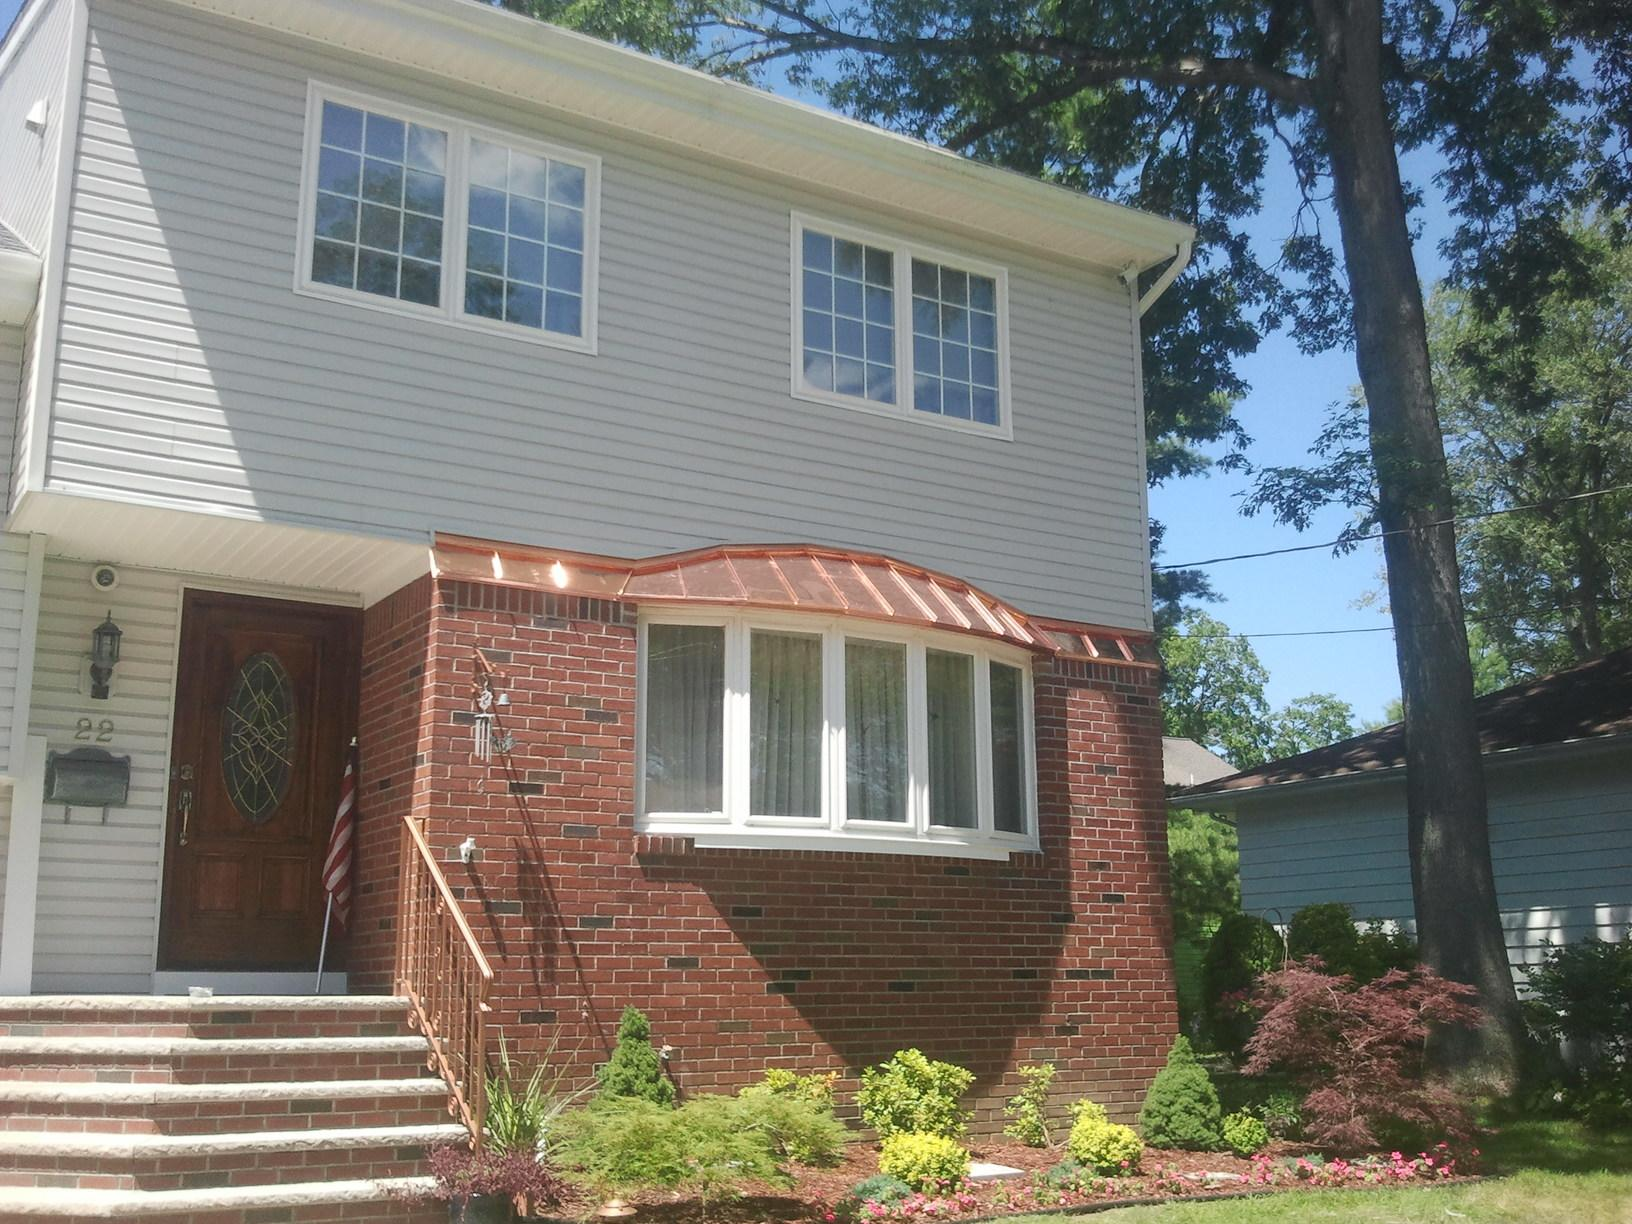 Copper Bay Window in Fair Lawn, NJ